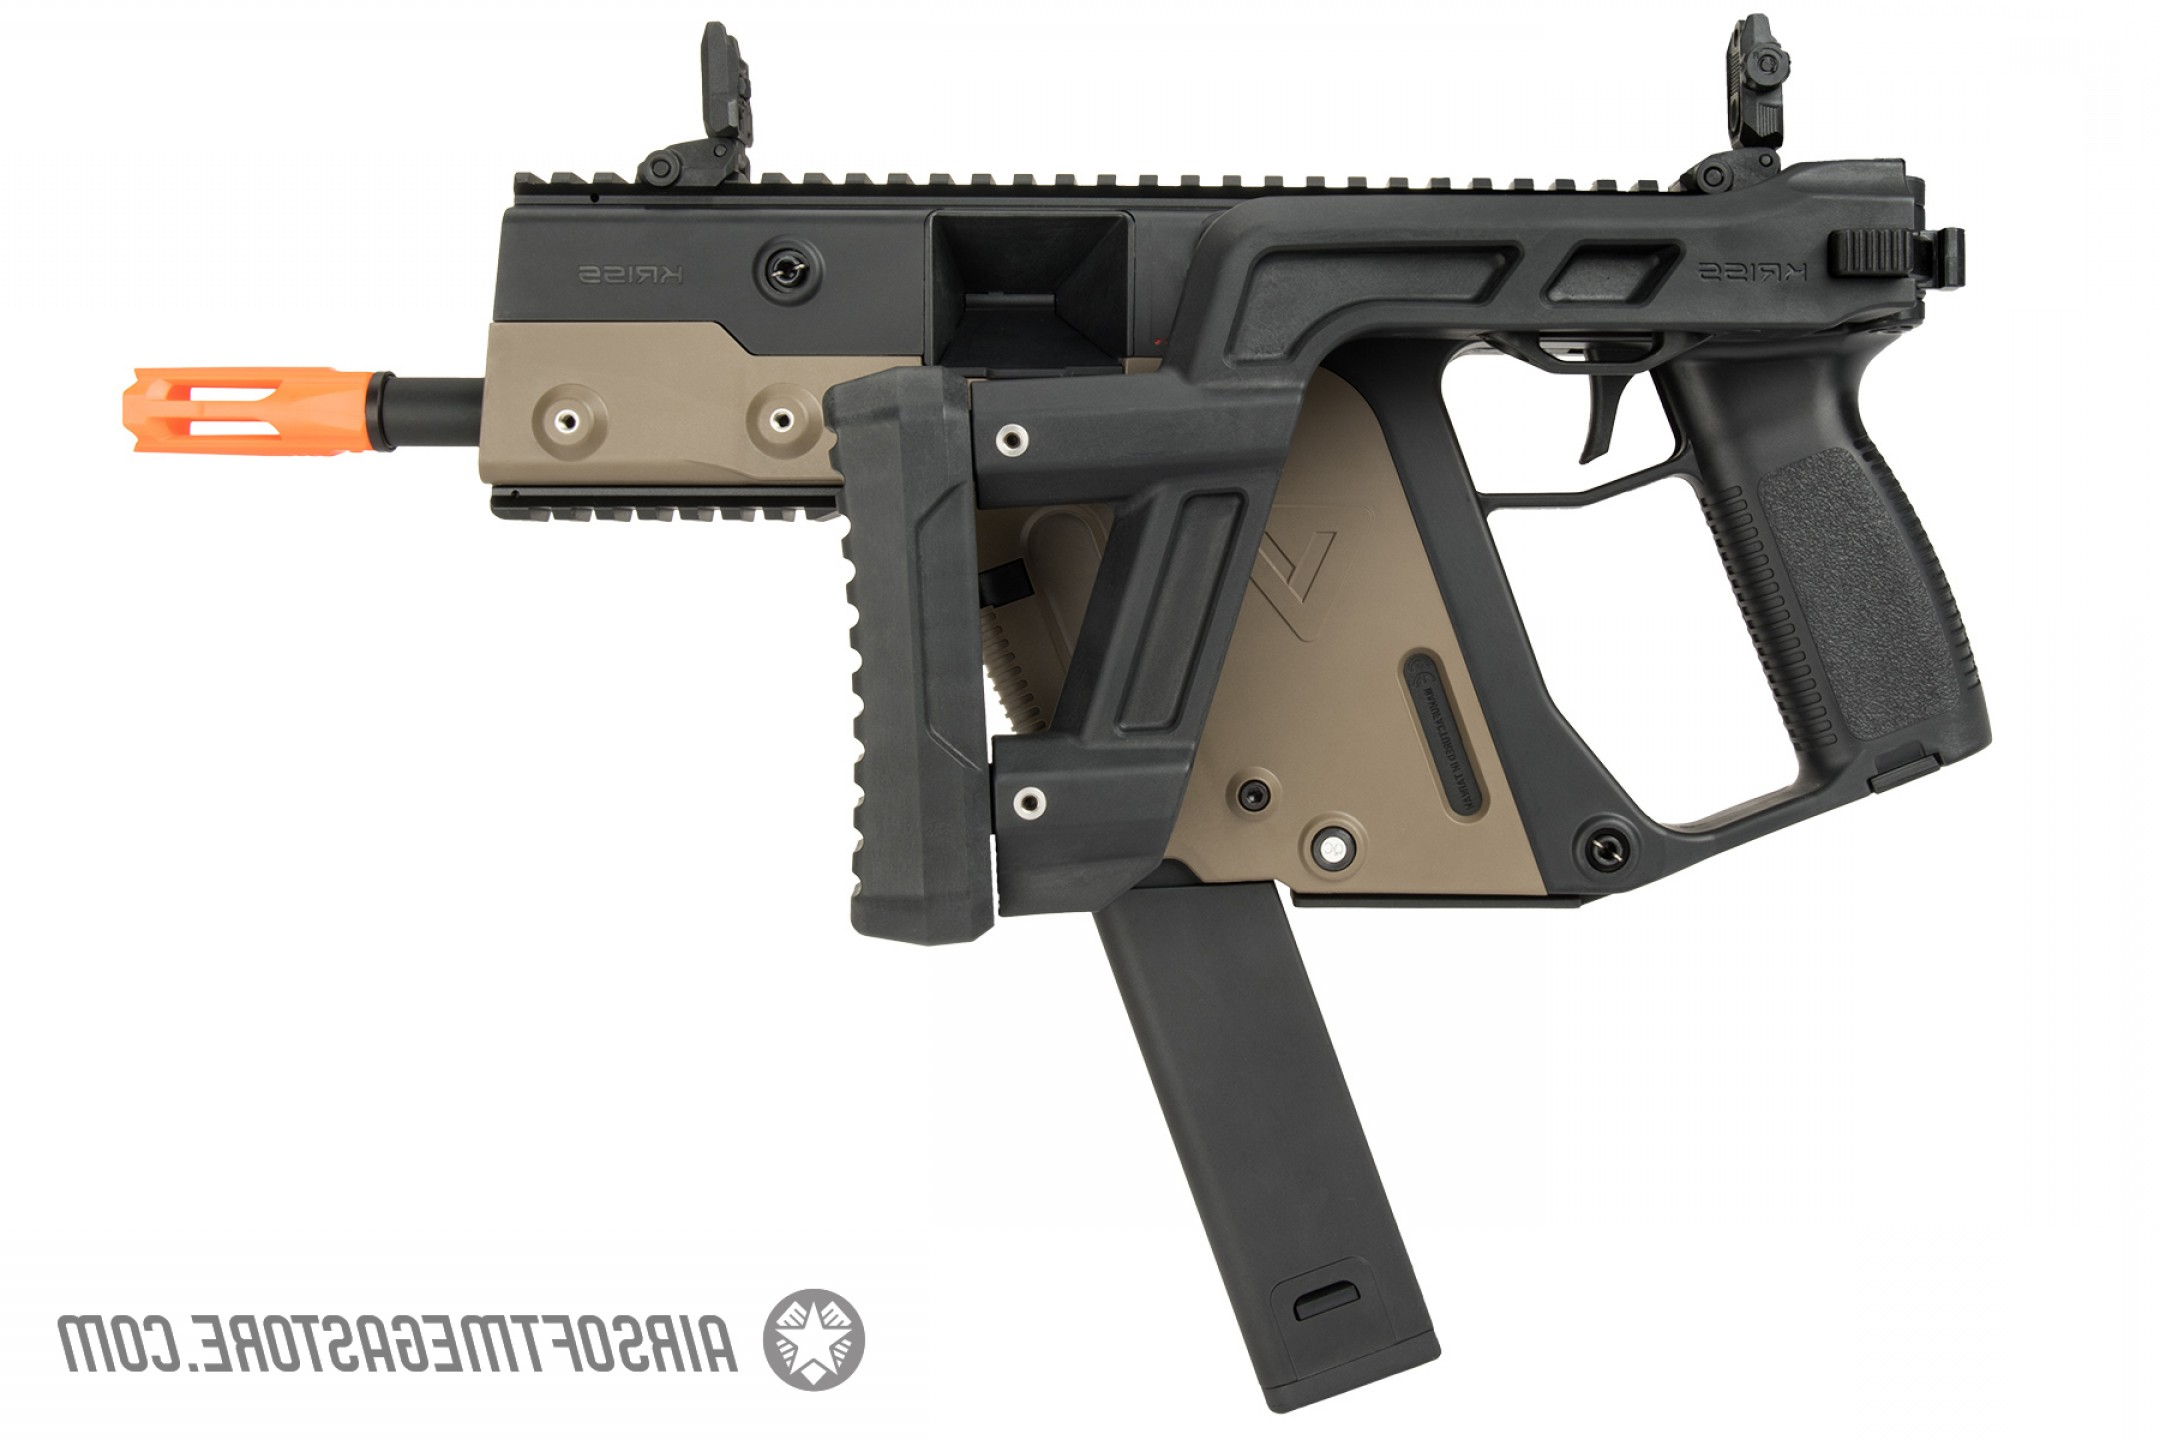 For Kriss Vector Side Picatinny Rails: Krytac Kriss Vector Airsoft Aeg Gen Ii Model Submachine Gun Dual Tone Kui Ktaeg Vsmgf T